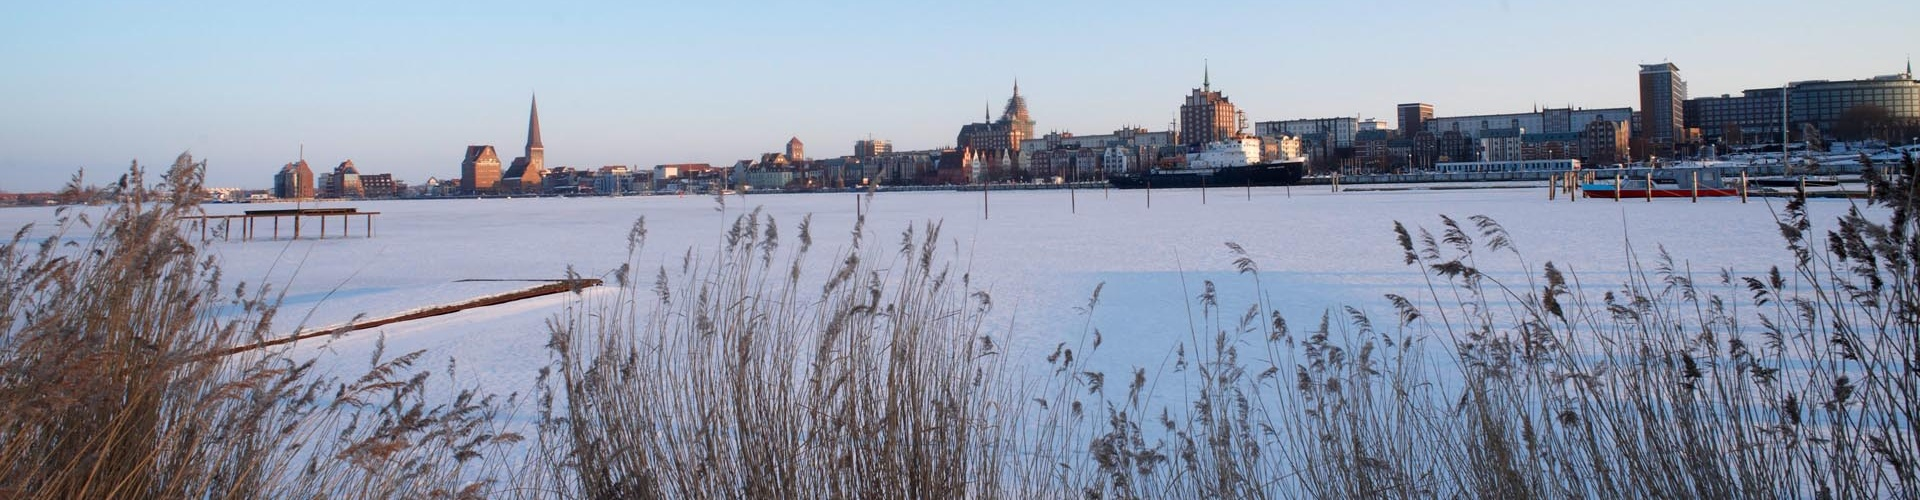 Rostock Warnow im Winter